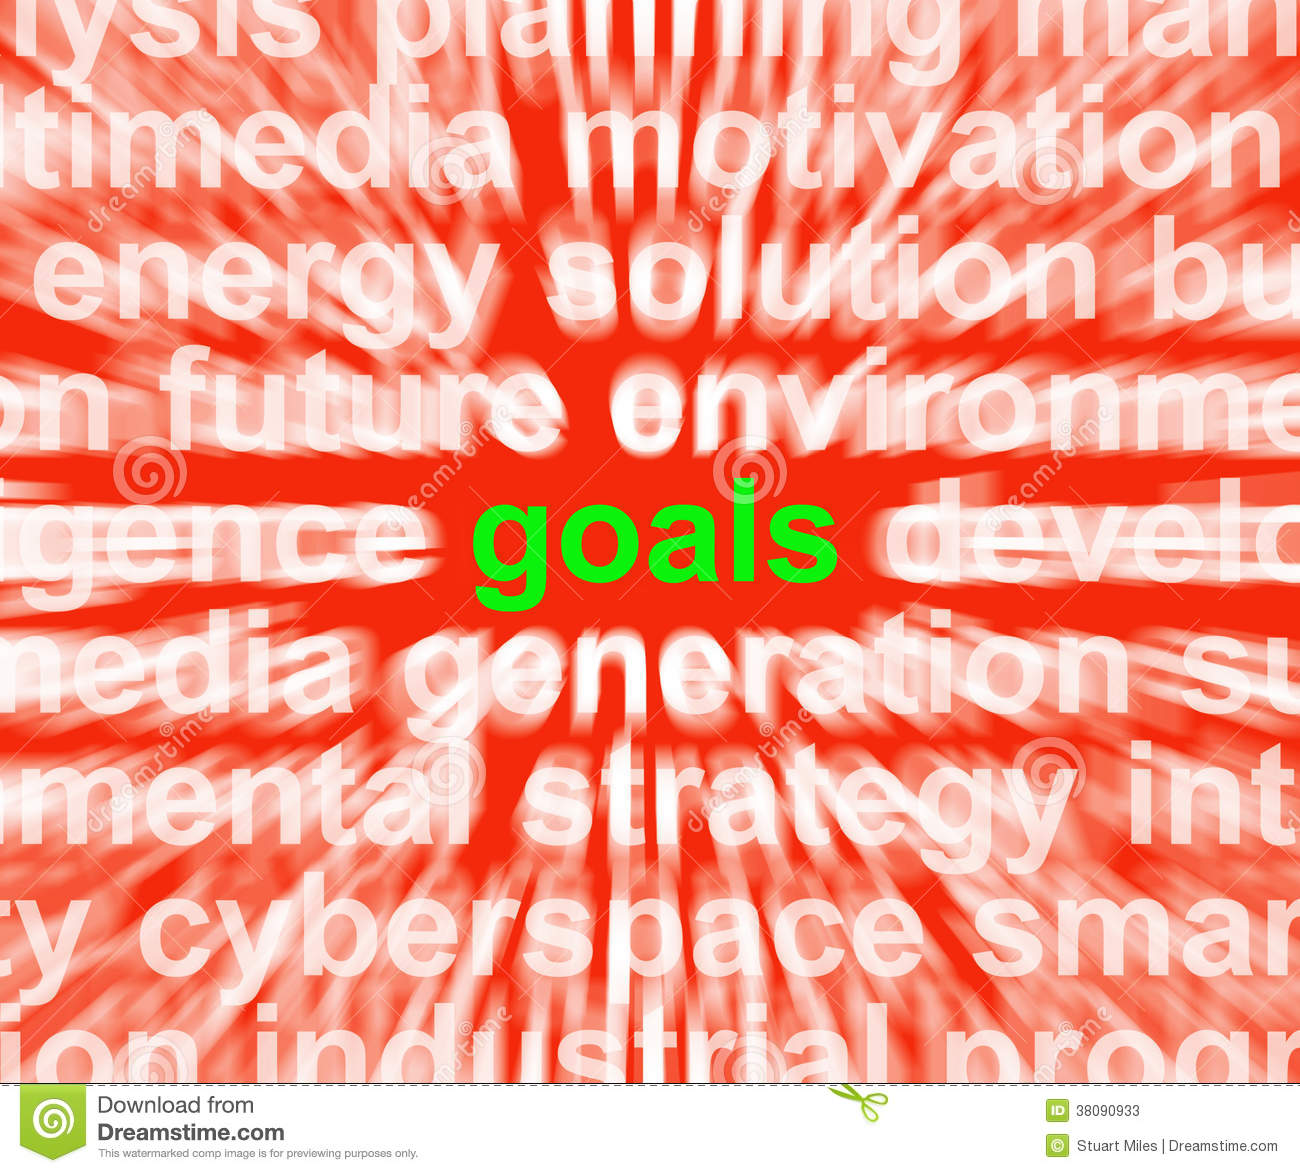 goal aspirations Summary of career aspirations/goals my career plan is to become an information technology (it) consultant operating across nations i like to work in firms of management consultants, software and systems houses within large manufacturers of computing equipment, or occasionally internally in major industrial companies.